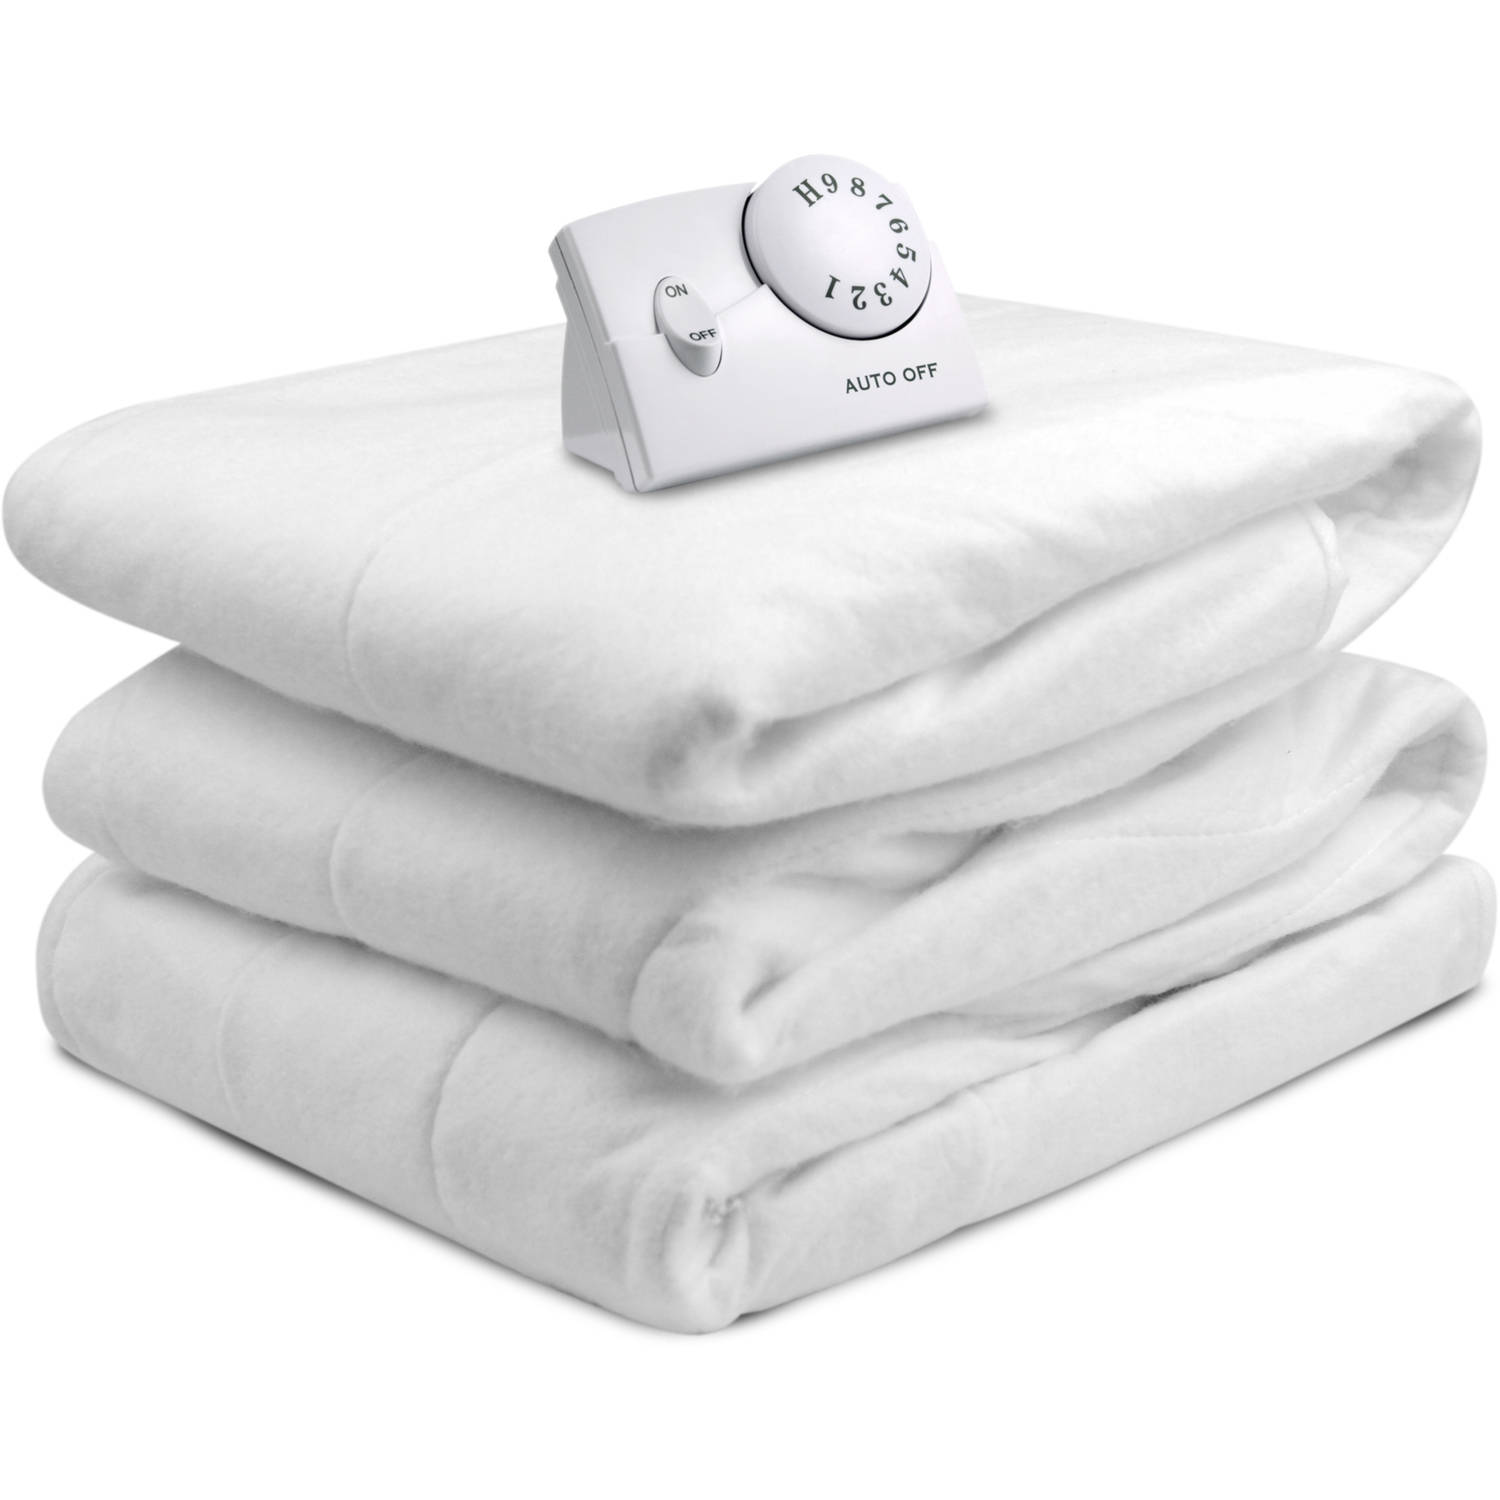 Biddeford Blankets Heated Mattress Pad Walmart